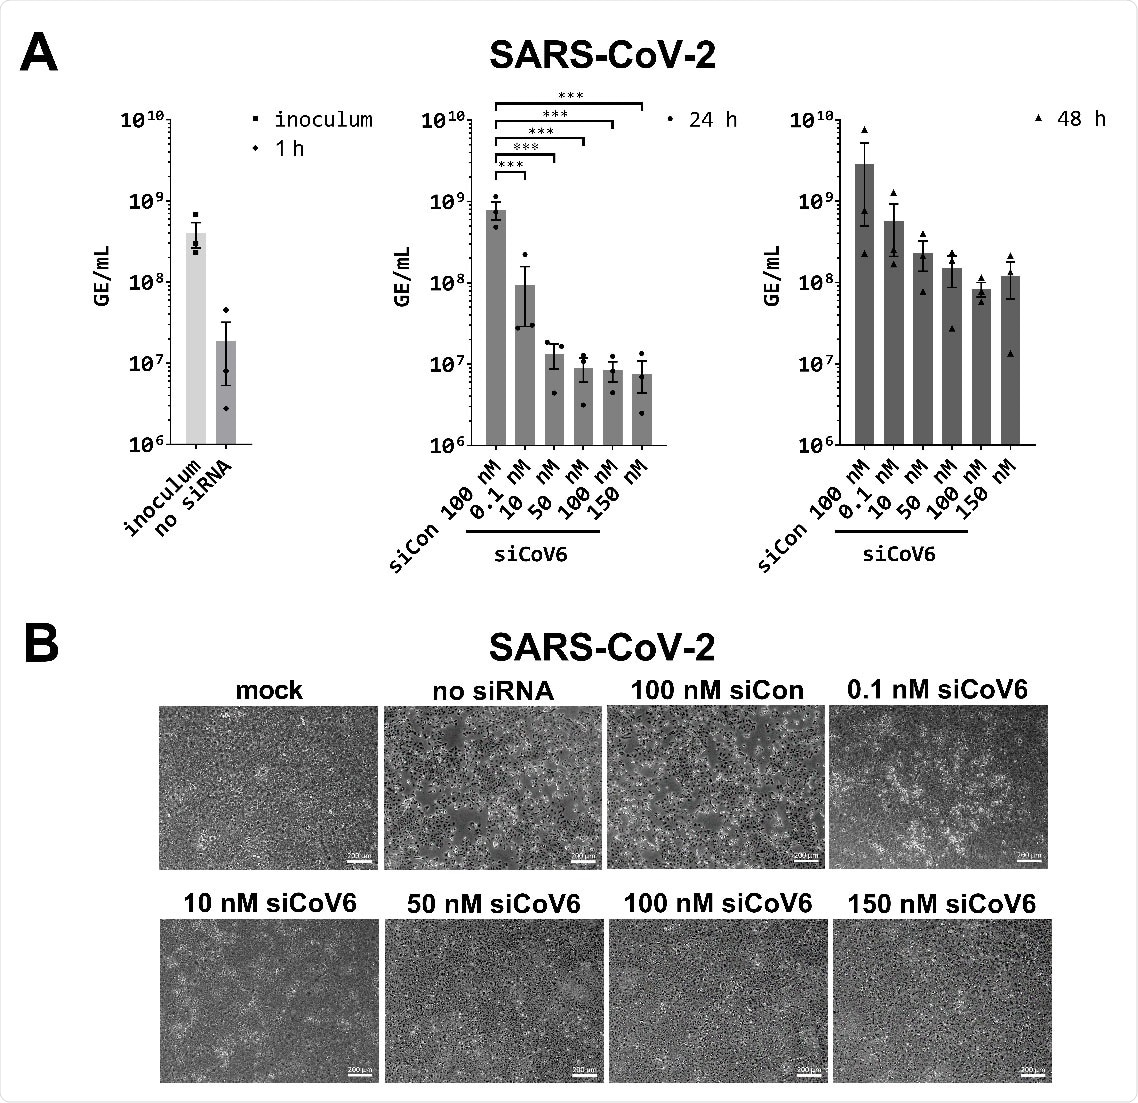 Inhibition of SARS‐CoV‐2 replication by siCoV6. (A) The replication of SARS‐CoV‐2 (BetaCoV/Munich/BavPat2‐ChVir984‐ChVir1017/2020) was investigated by quantitative RT‐PCR in Vero E6 cells. Vero E6 cells were transfected with 0.1–150 nM siCoV6 or 100 nM siCon and infected 24 h after transfection with SARS‐CoV‐2 at a MOI of 0.01. Subsequently, the cells were washed, supplemented media were added and viral RNA was isolated from the culture supernatant at 1 hpi, 24 hpi and 48 hpi. Genome equivalents per mL (GE/mL) were determined by quantitative RT‐PCR. The mean ± SEM of three independent experiments is shown. The statistical significance was determined by a univariate analysis of variance (one‐way ANOVA); ***p <0.001. (B) Cell morphology observation. Cells were fixed 48 h after infection with SARS‐CoV‐2 and the cytopathic effect (CPE) of viral infection was documented by transmitted light microscopy. Representative data from three independent experiments are shown. Scale bar: 200 μm.